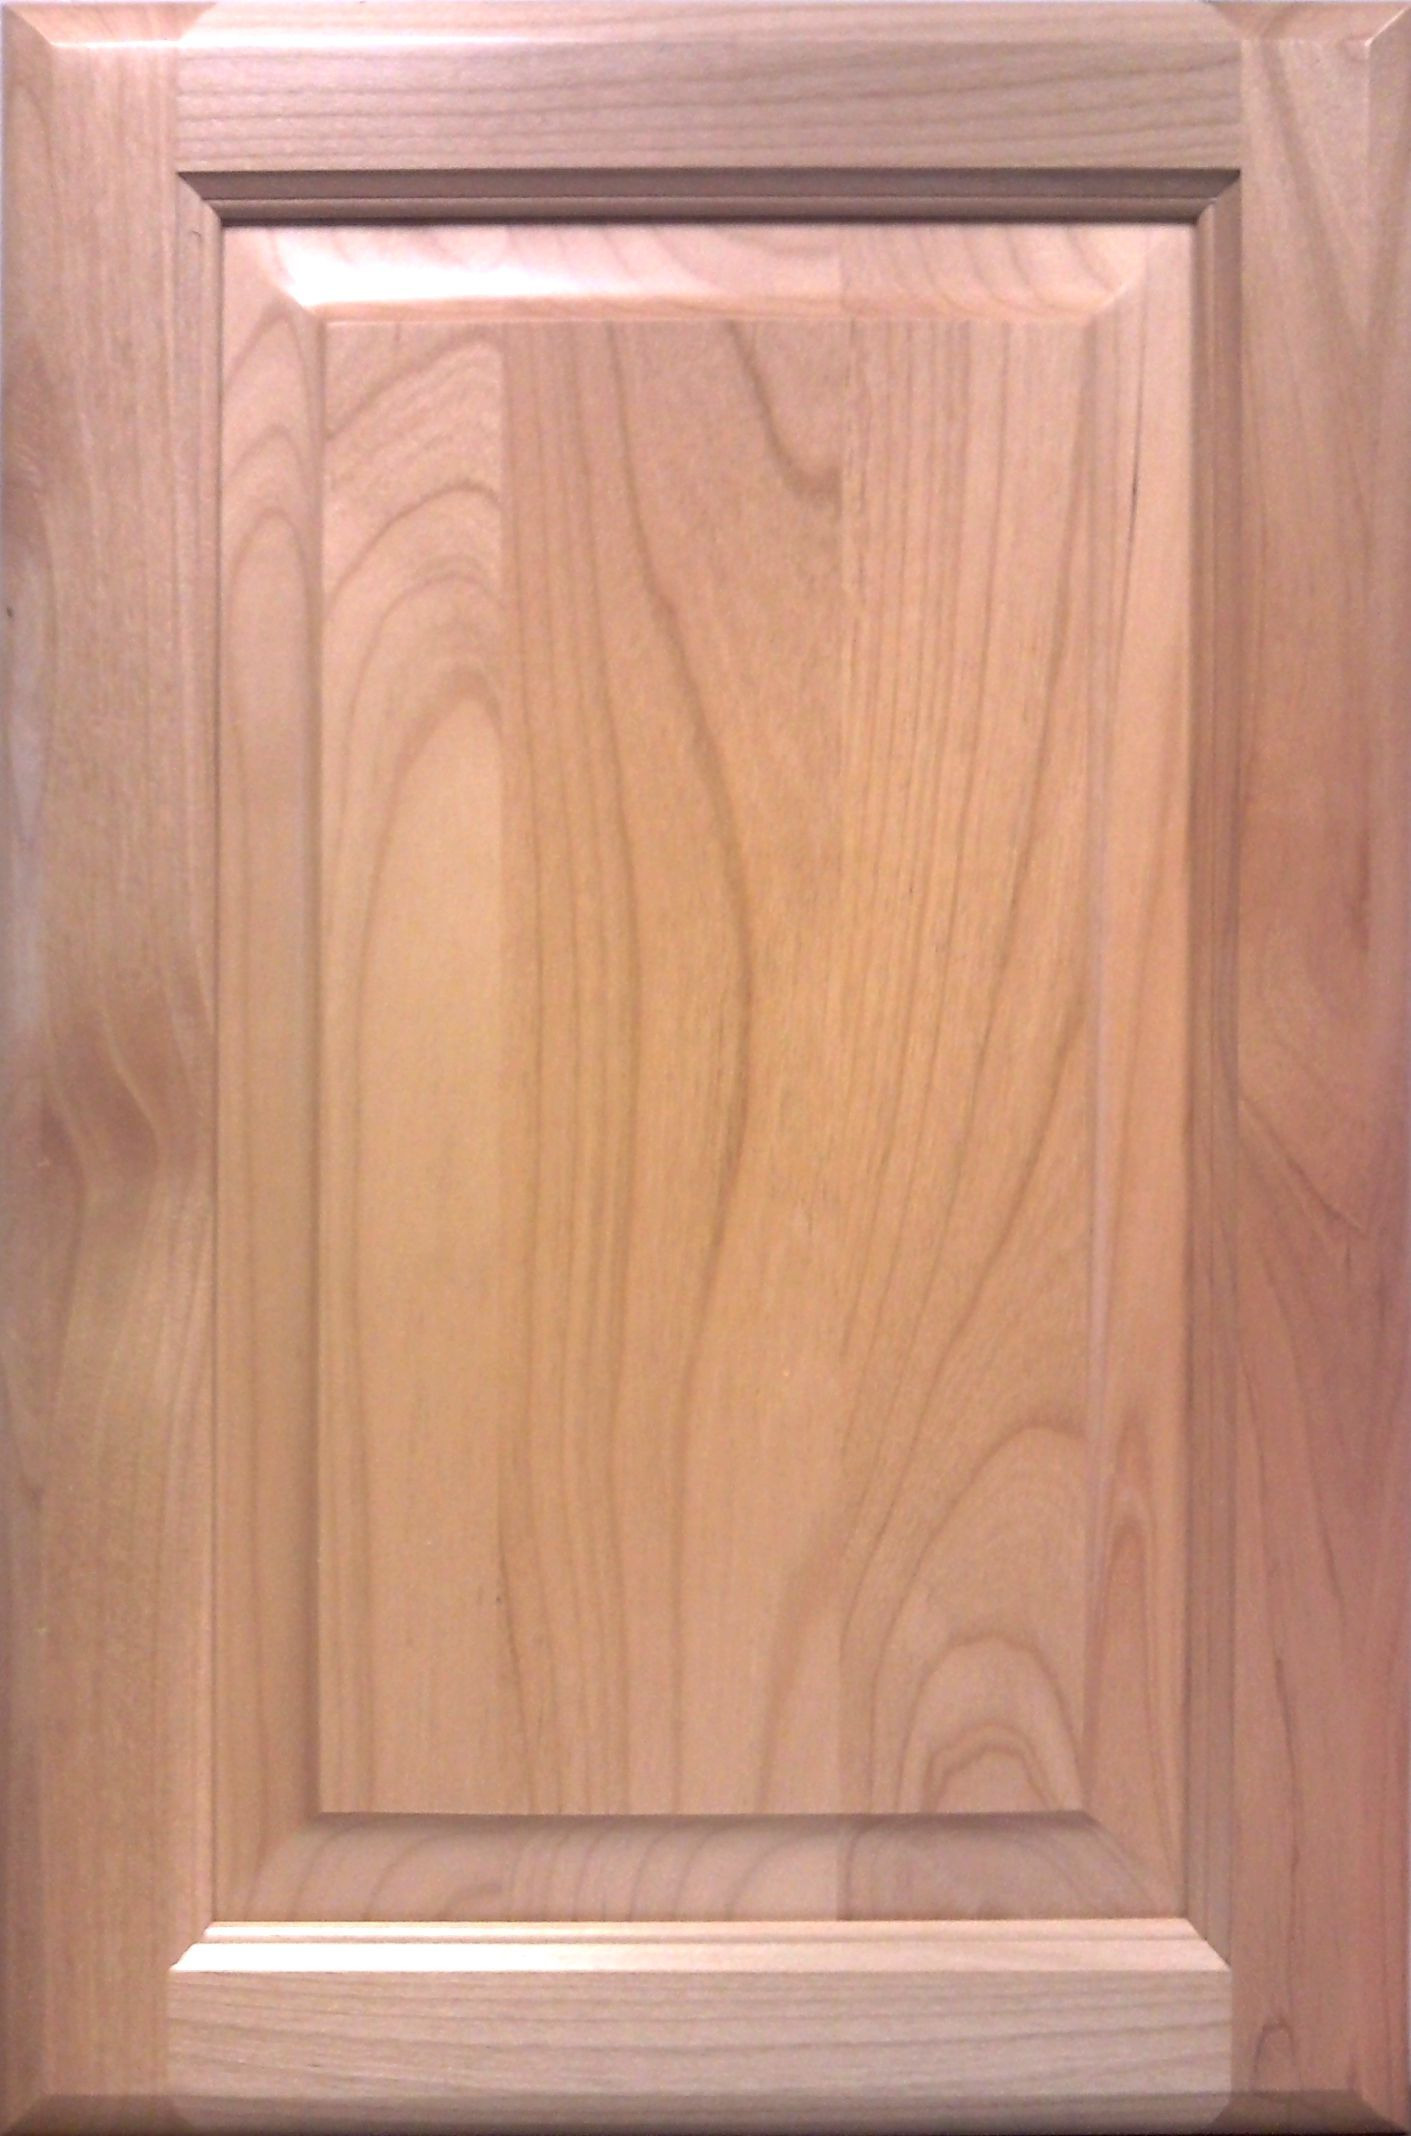 Replacement Cabinet Doors and Drawer Fronts Fresh Pine Country Product Id 960 Shown In Select Alder